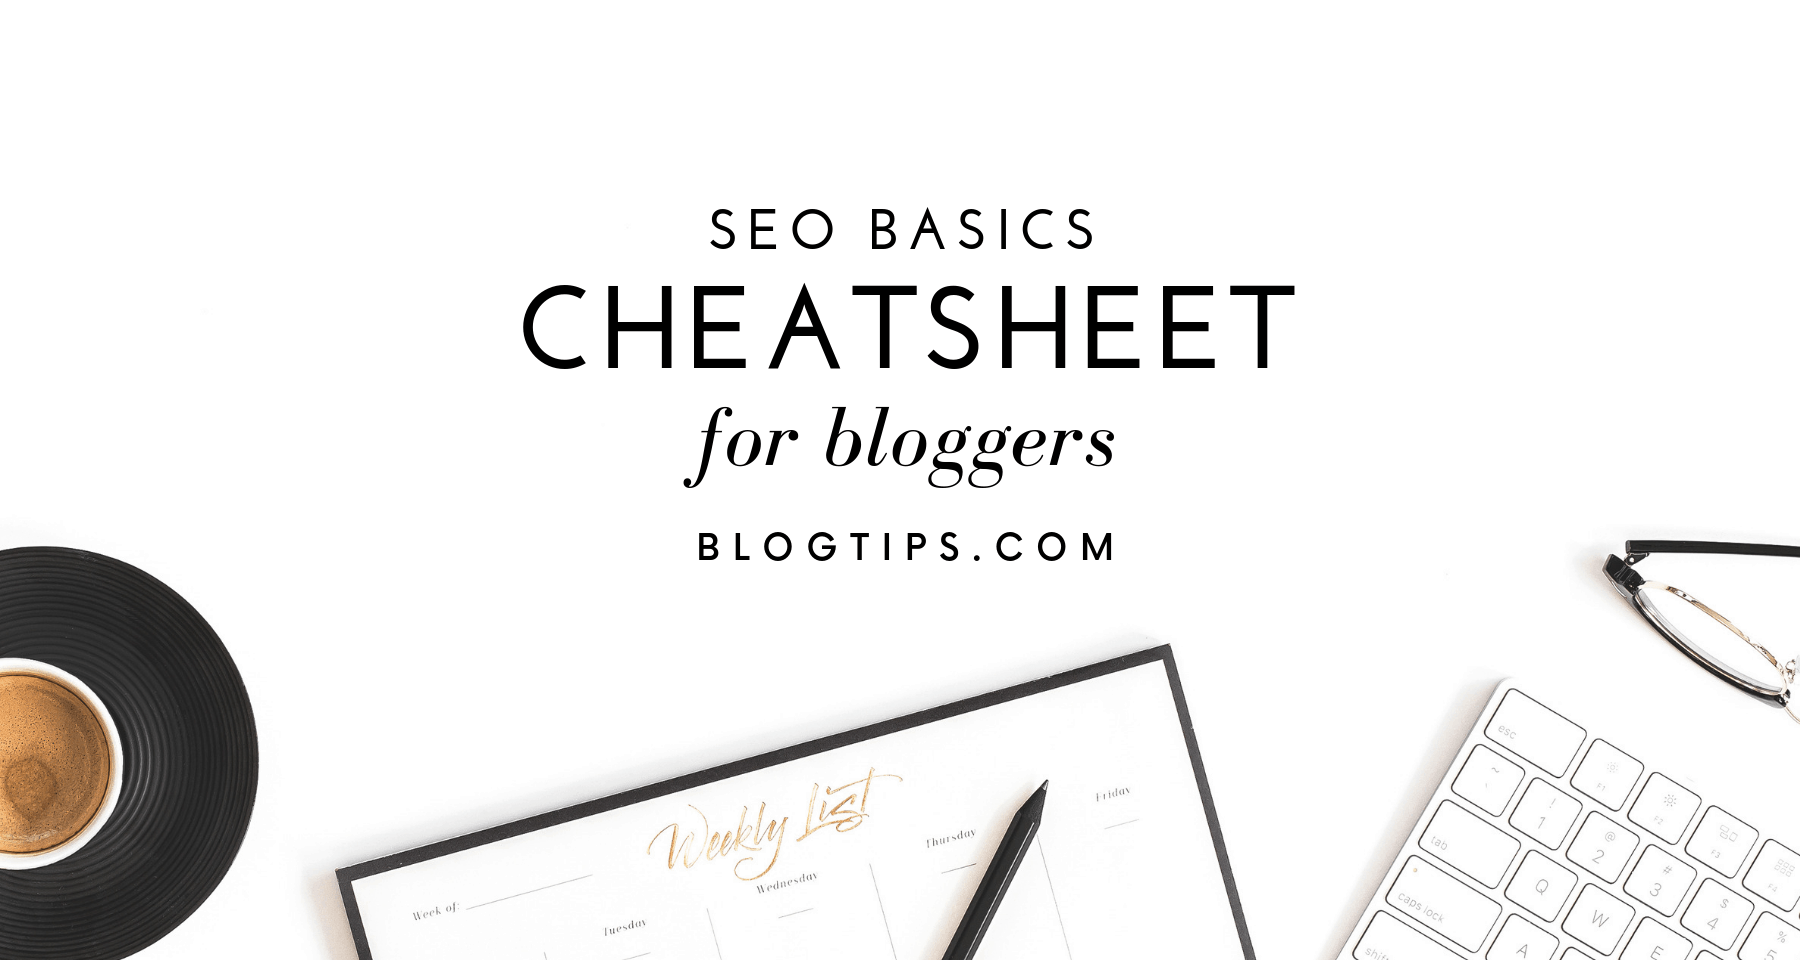 3 SEO Ranking Factors To Boost Your Organic Traffic, SEO Basics Seo cheatsheet SEO tips for bloggers beginner SEO guide free SEO training BlogTips.com